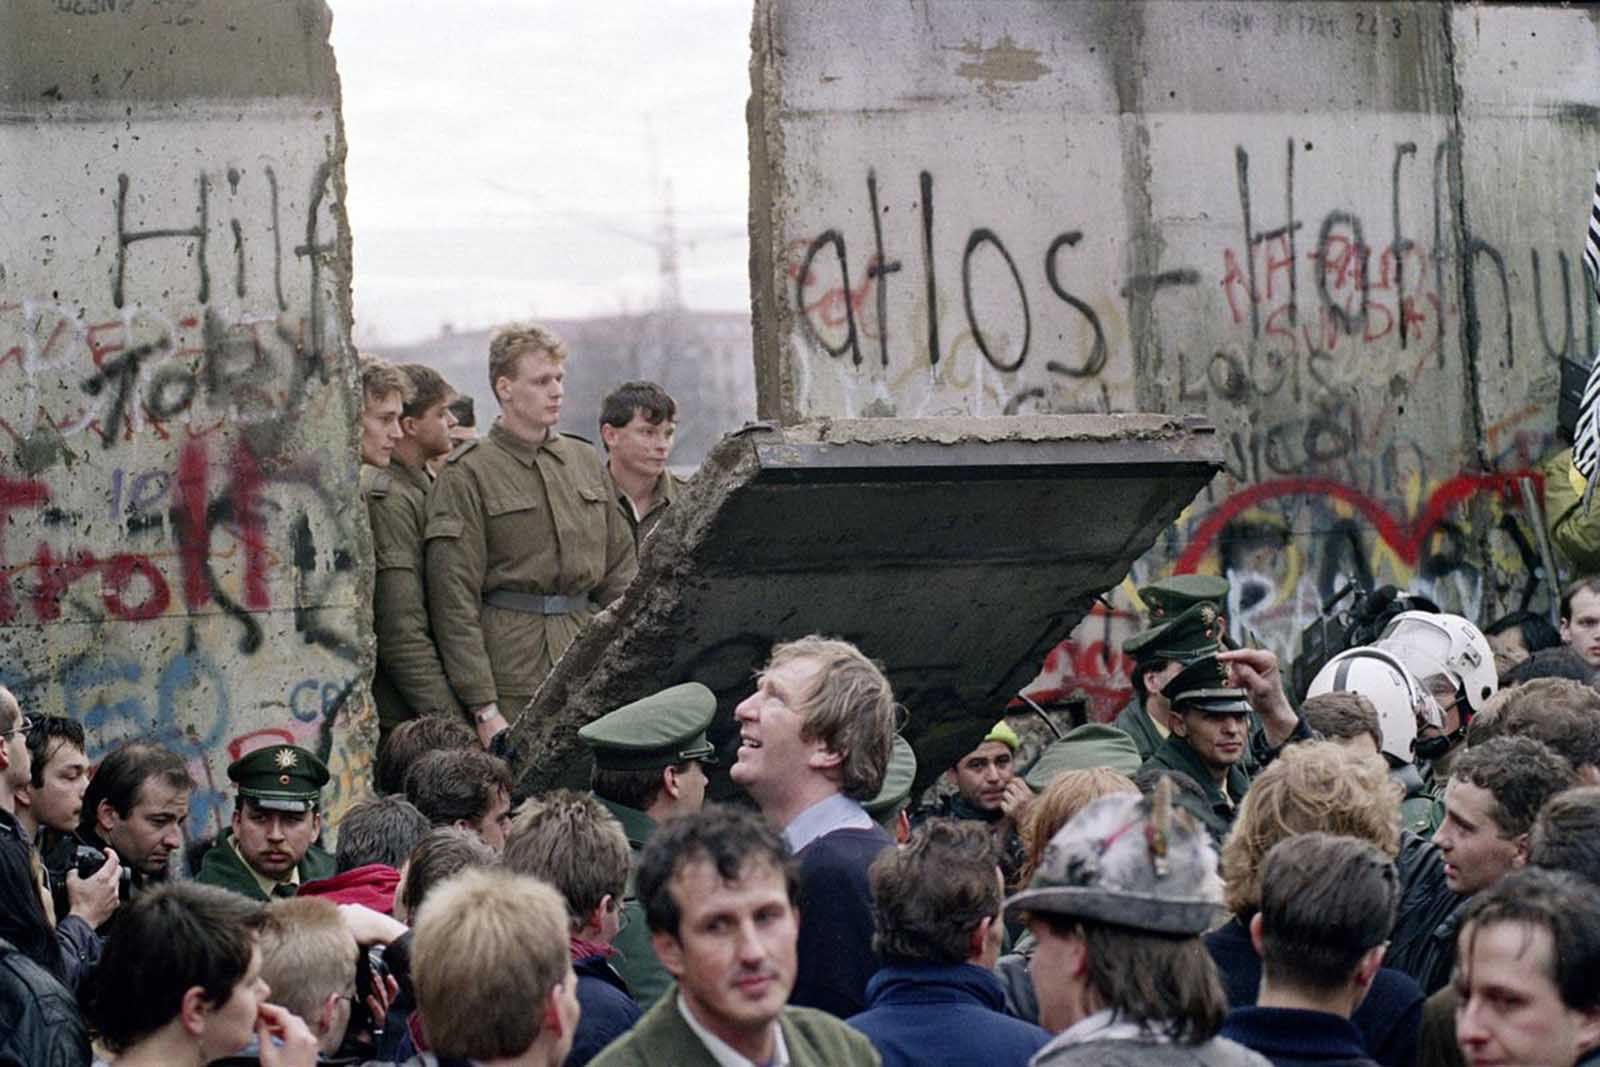 .West Berliners crowd in front of the Berlin Wall early on the morning of November 11, 1989, as they watch East German border guards demolishing a section of the wall in order to open a new crossing point between East and West Berlin, near Potsdamerplatz.